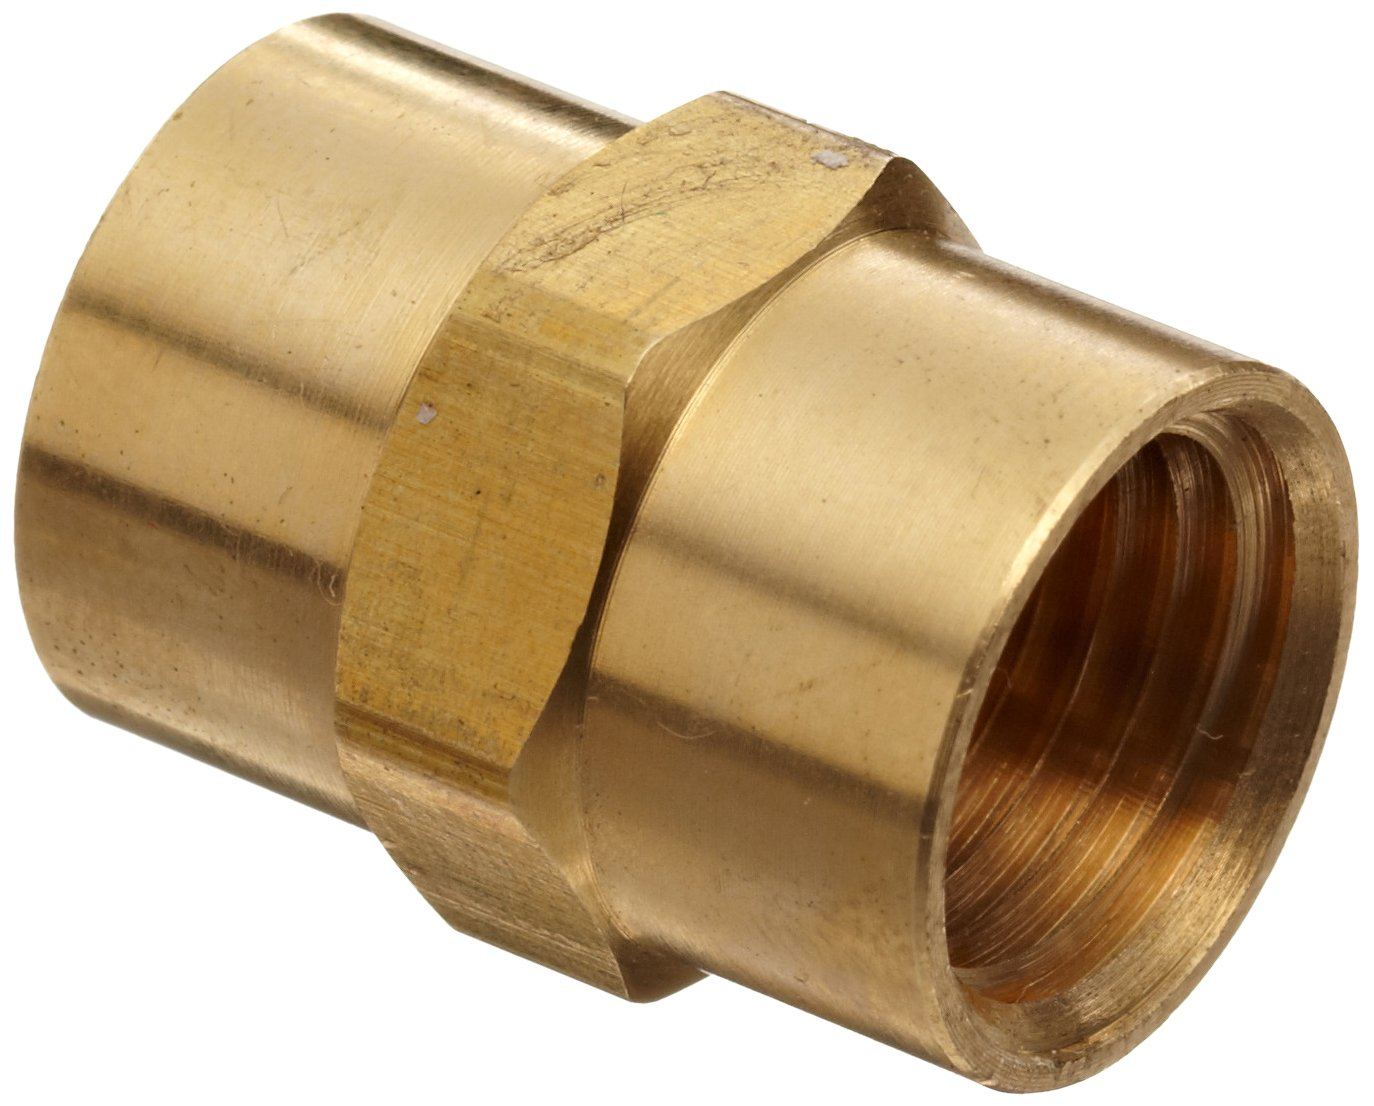 Anderson Metals Brass Pipe Fitting Coupling 1 4 x 1 4 Female Pipe